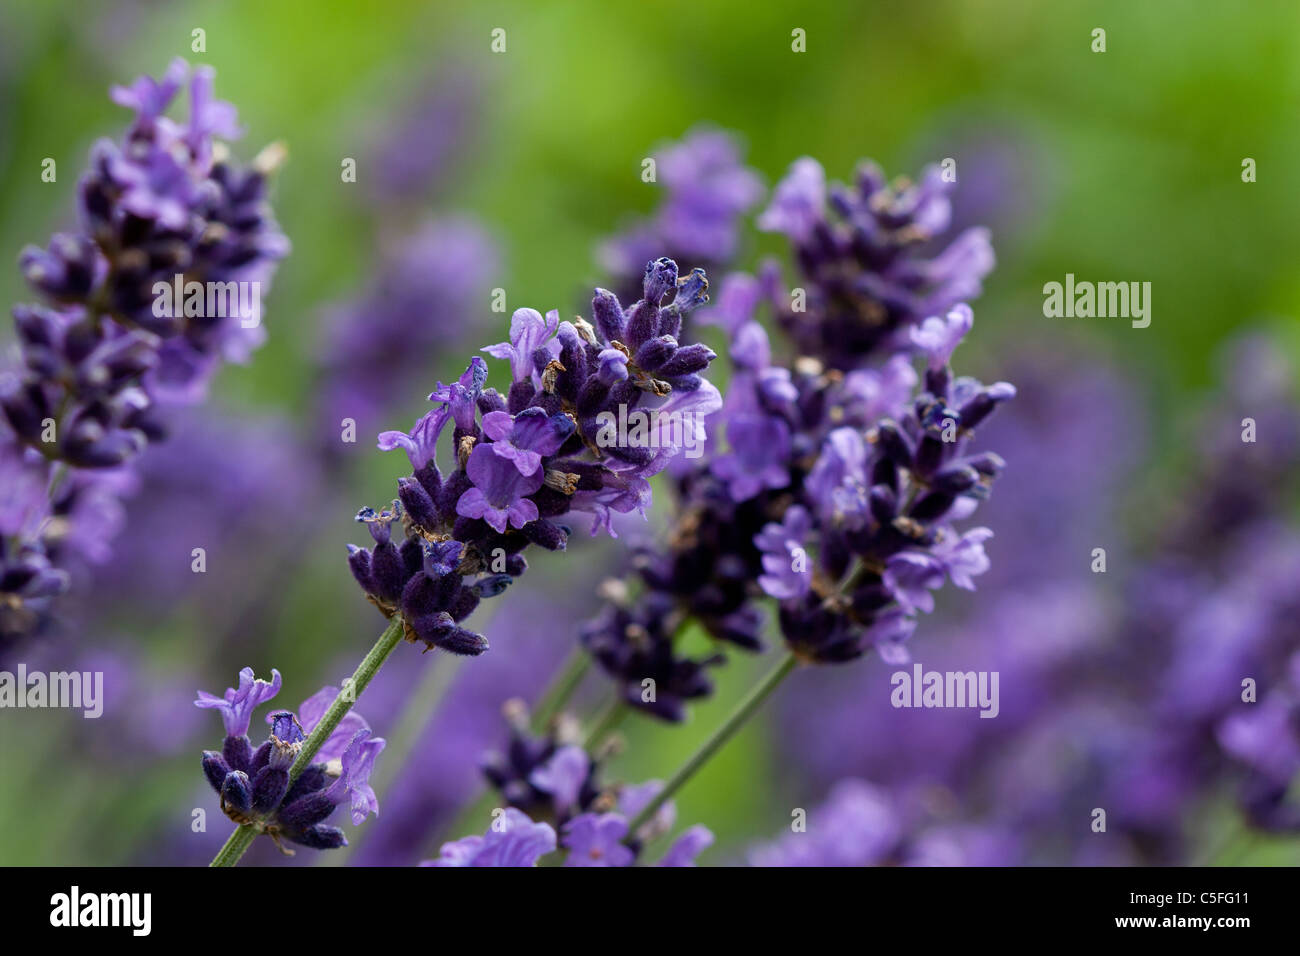 A macro shot of a group of lavender plants. - Stock Image